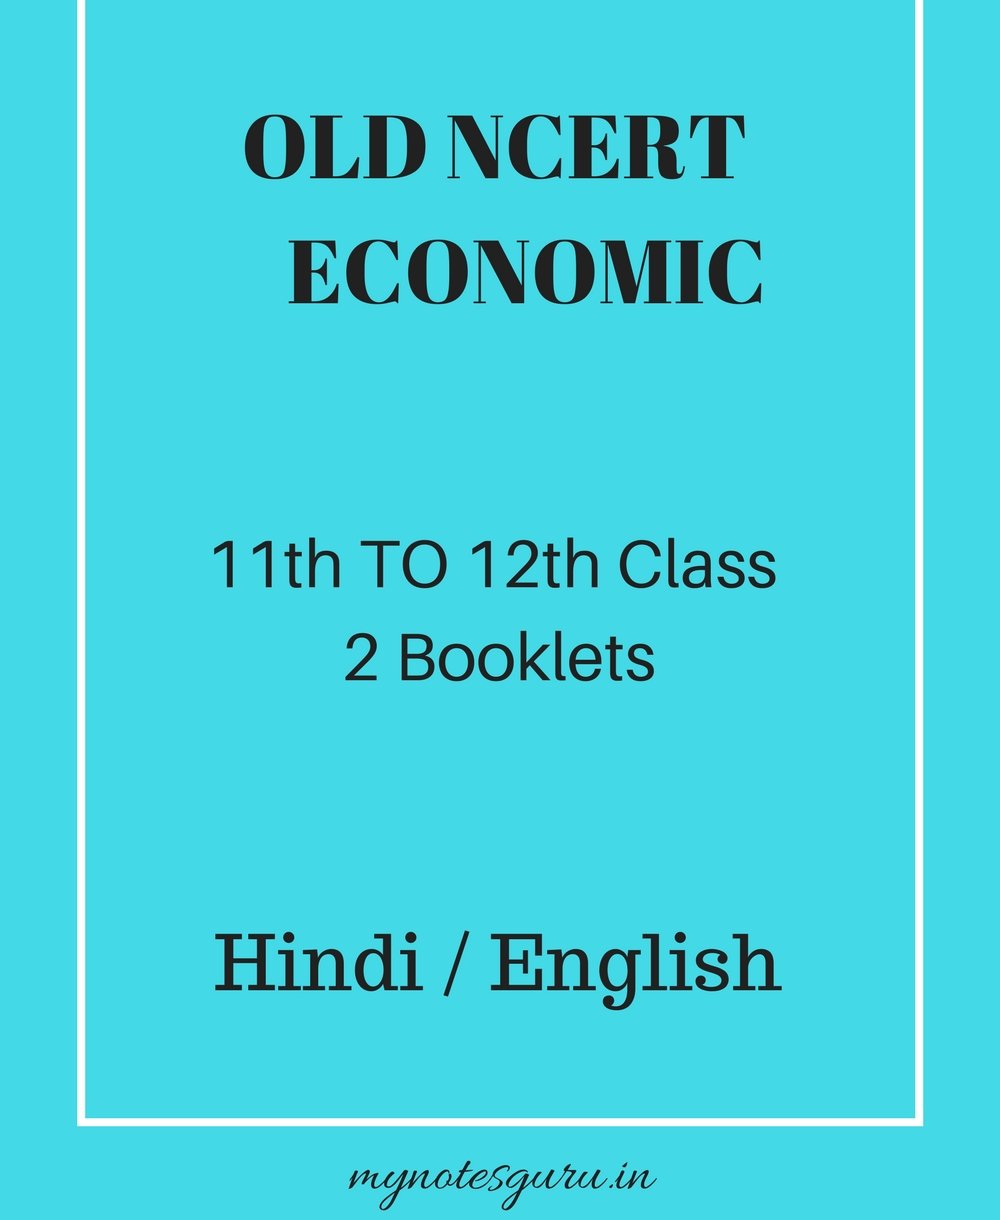 ncert 11 book economics In this course sadia will discuss about all the chapters of class 11 economic ncert this course will give the learners a brief idea about the economic development of india along with the major topics like indian economy on the eve of independence , indian economy 1950- 1990, liberalisation, privatisation, globalisation, poverty, human capital formation in india, rural development, employment.